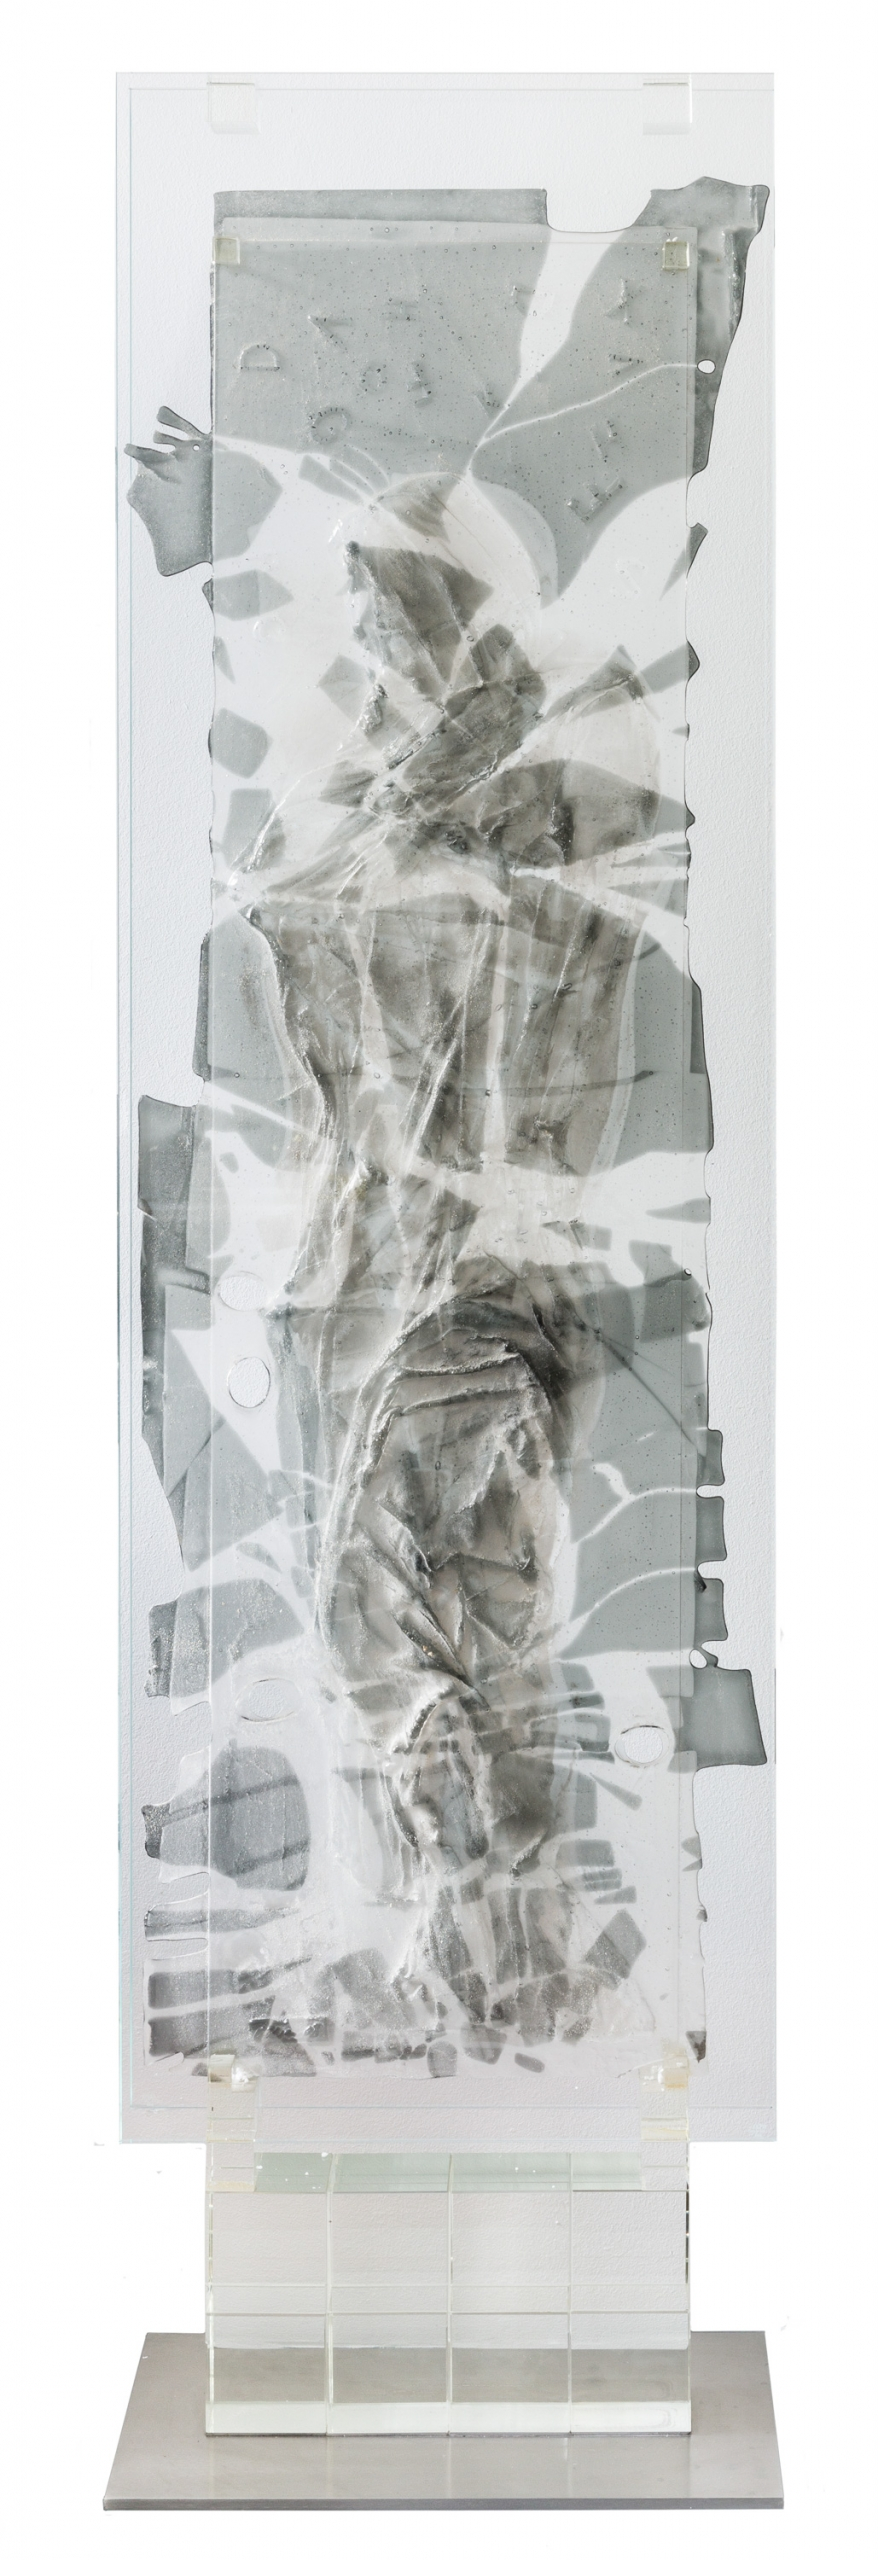 Valentin Oman, Ohne Titel (Glasstele) / untitled (glass stele)